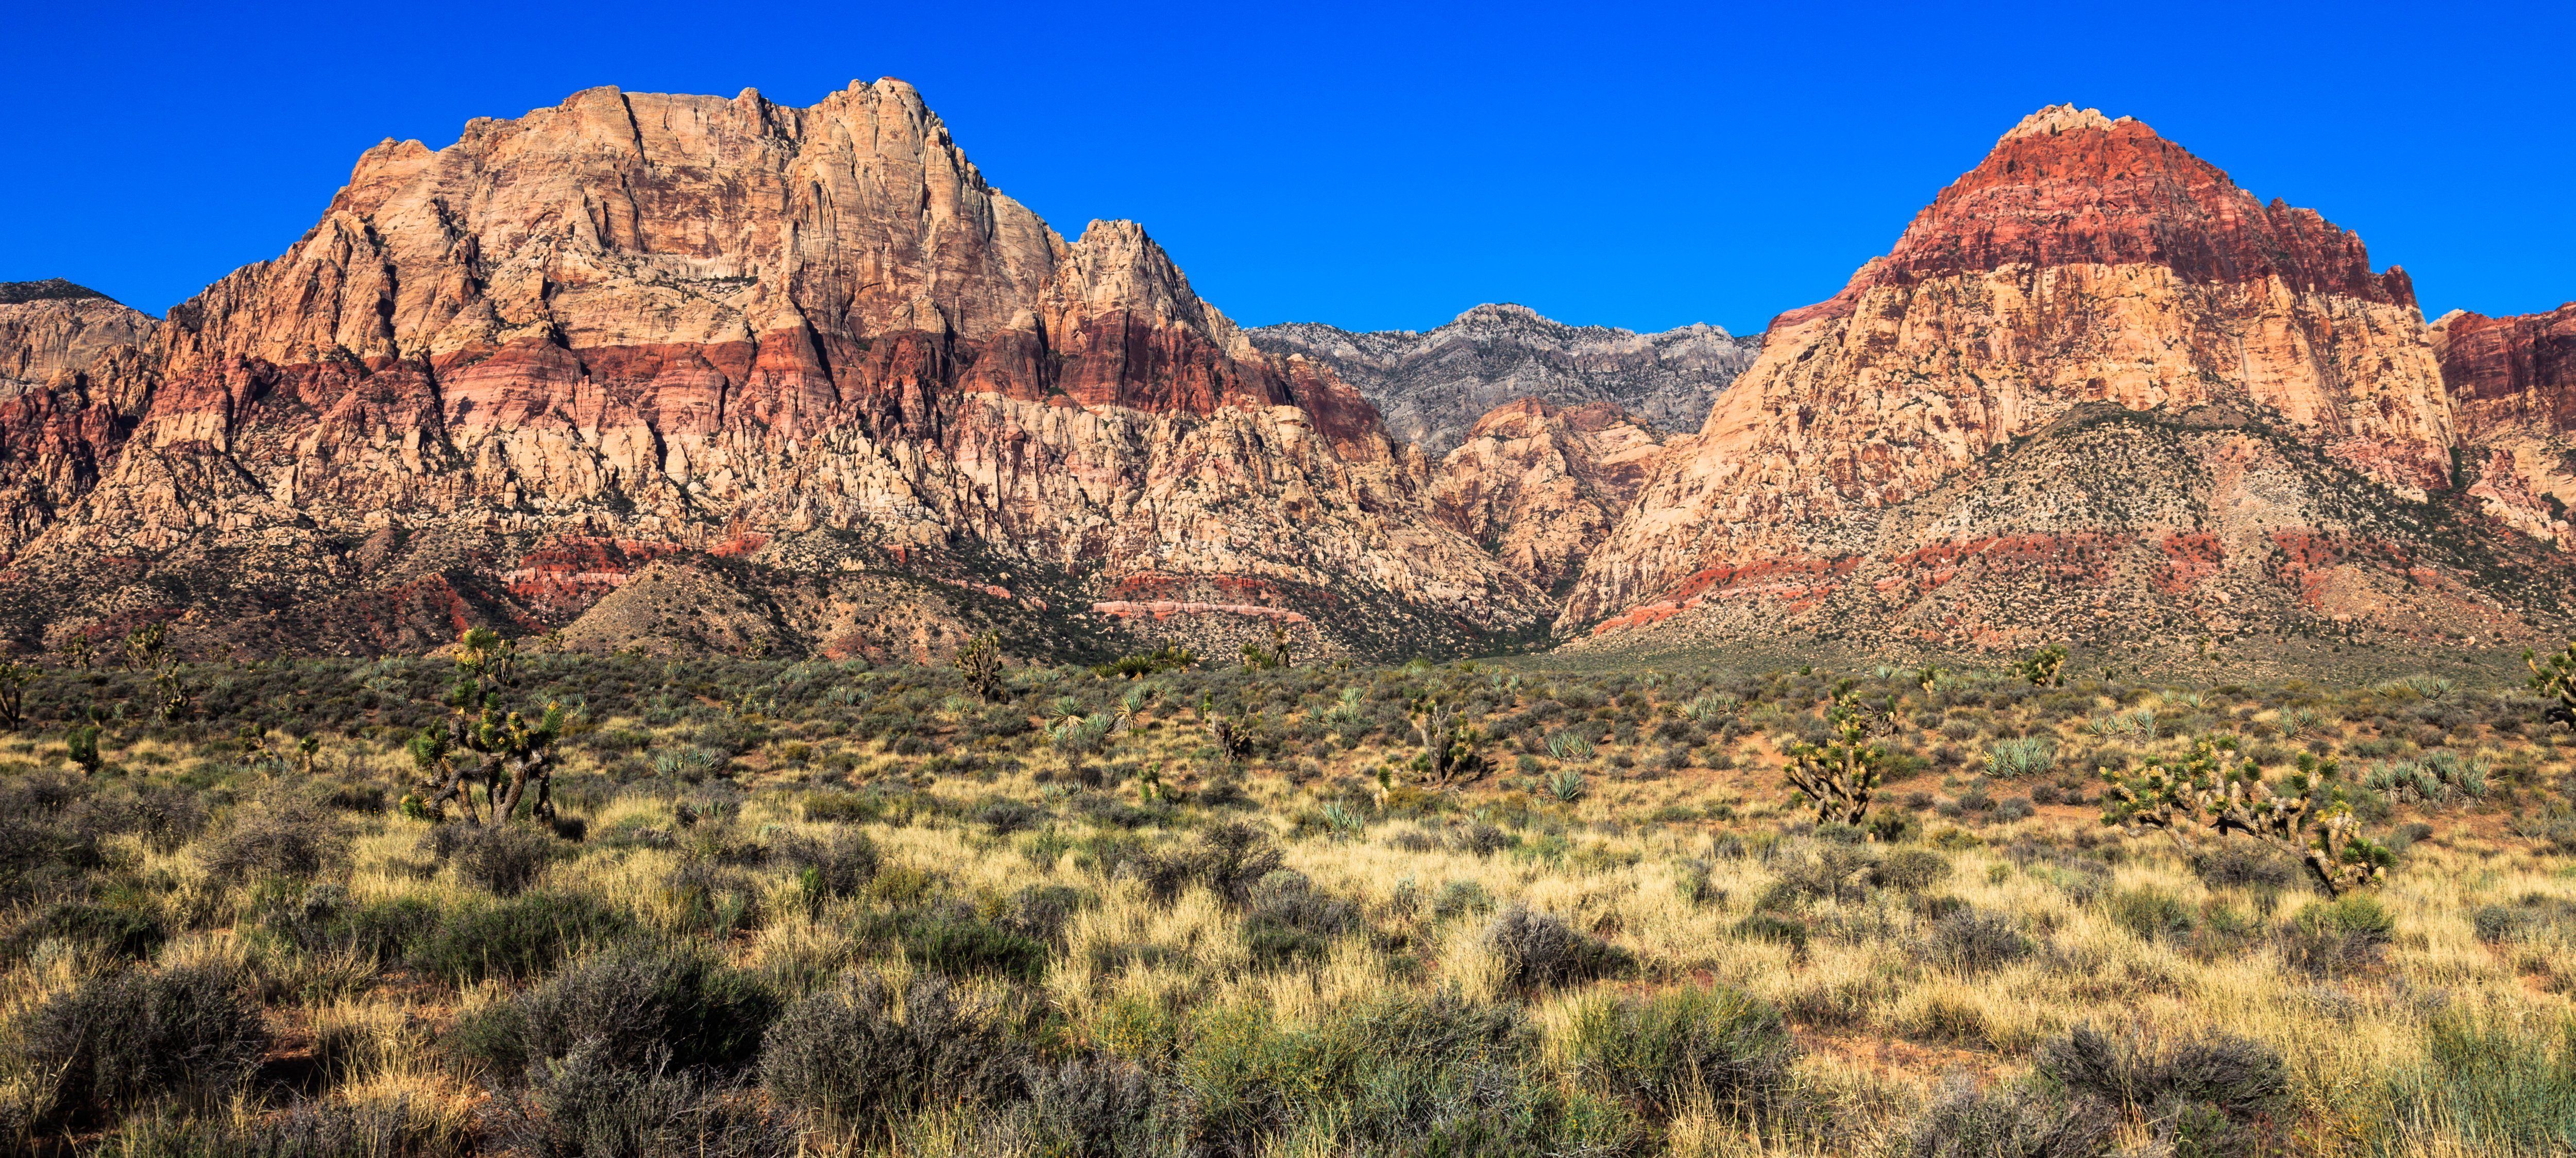 Panoramic view of Red Rock Canyon Conservation Area, Nevada.